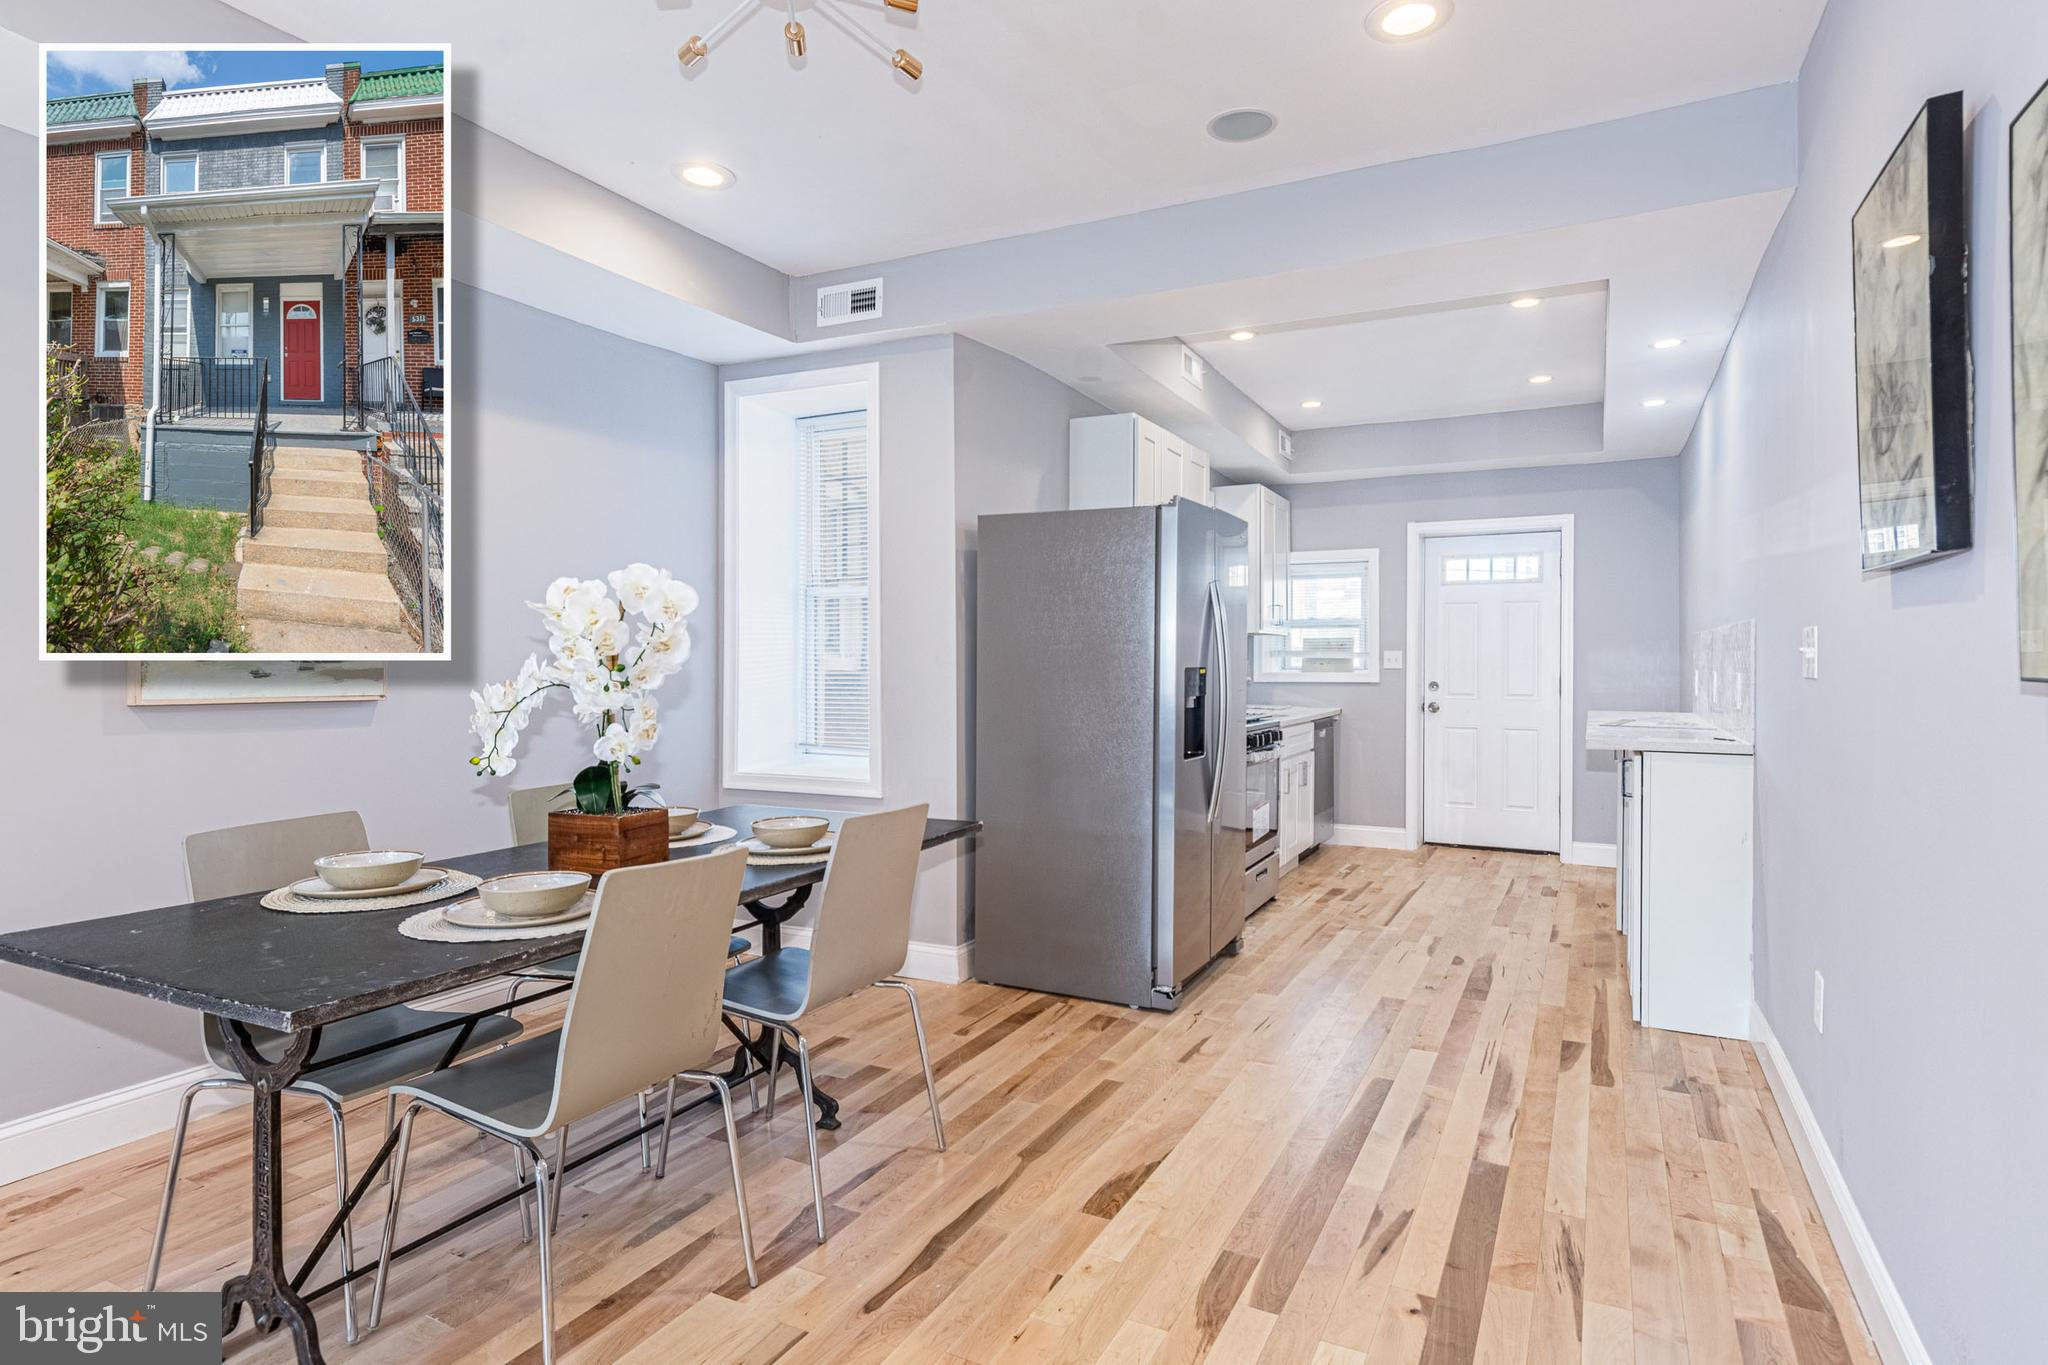 BEAUTIFULLY DESIGNED PORCH FRONT RENOVATION WITH 3 FINISHED LEVELS & OFF STREET PARKING!  Open floor